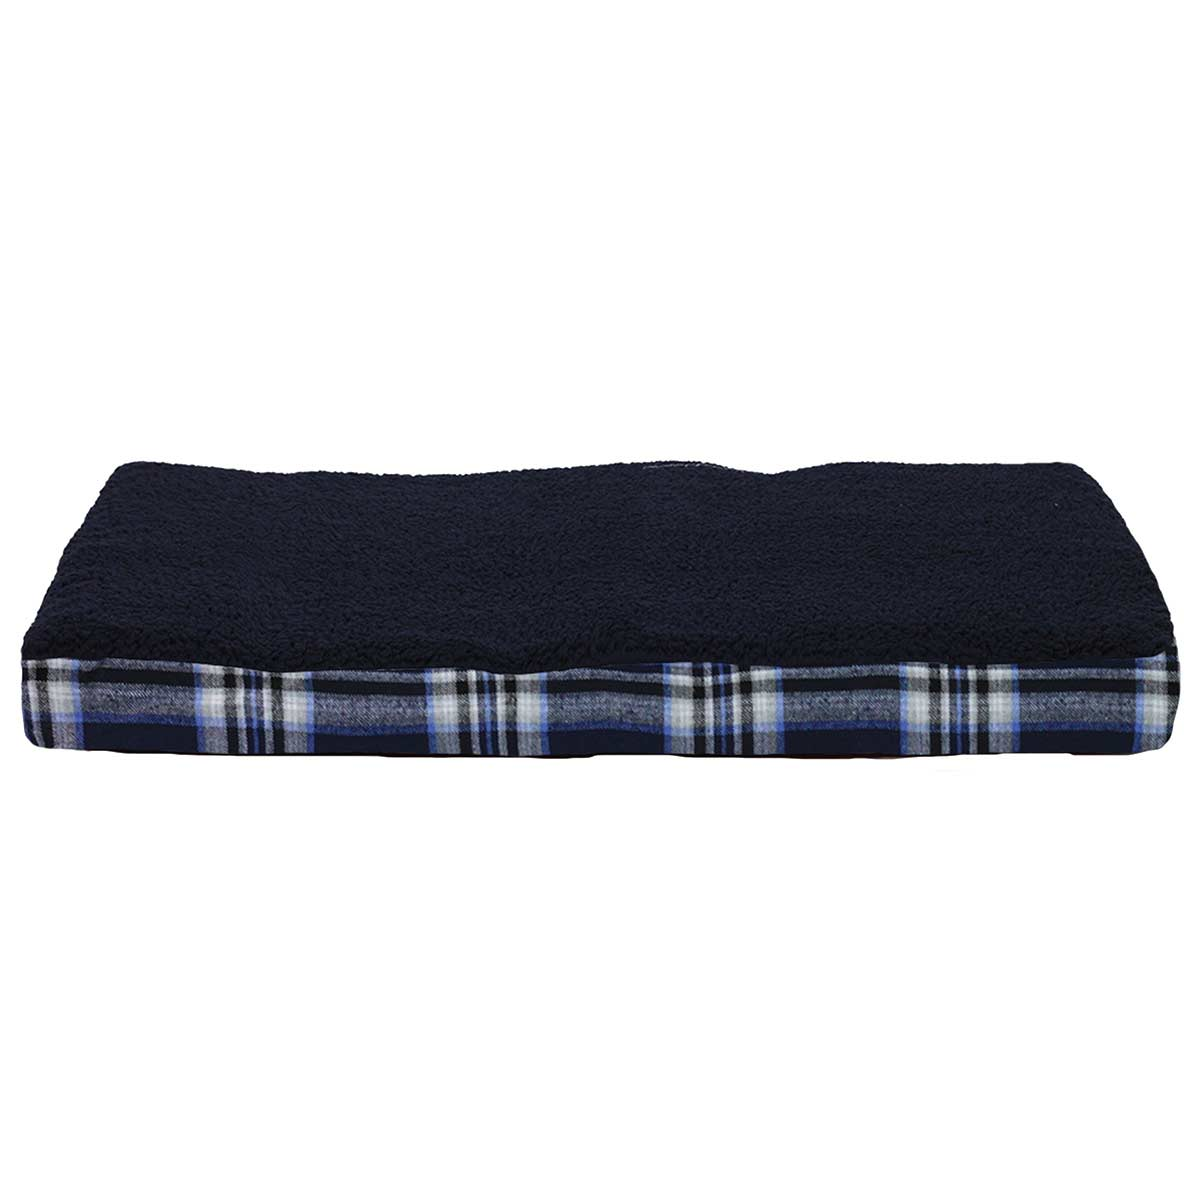 Black and Plaid FurHaven NAP Snuggle Terry Top Deluxe with Memory Foam Ortho Pet Bed